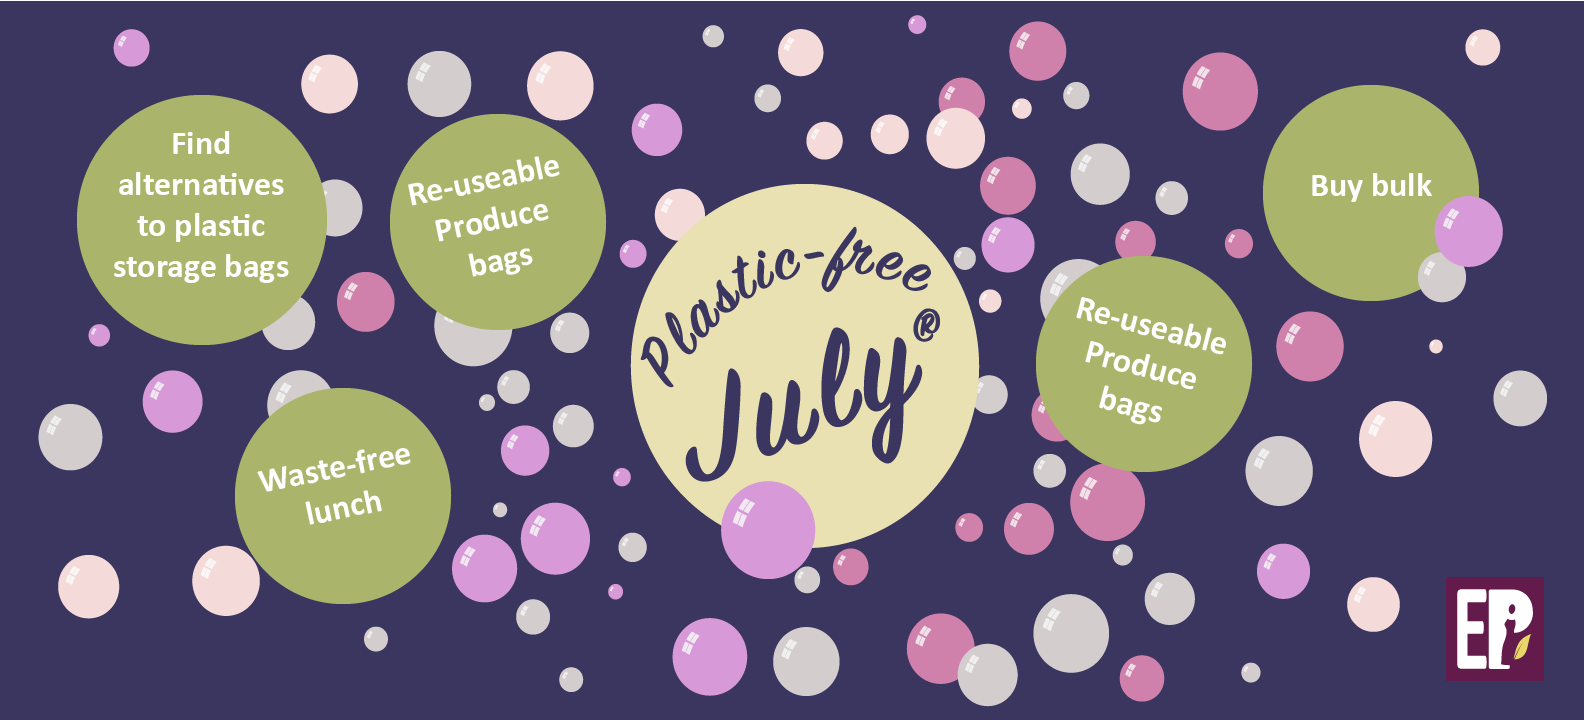 Take-aways from Plastic Free July®